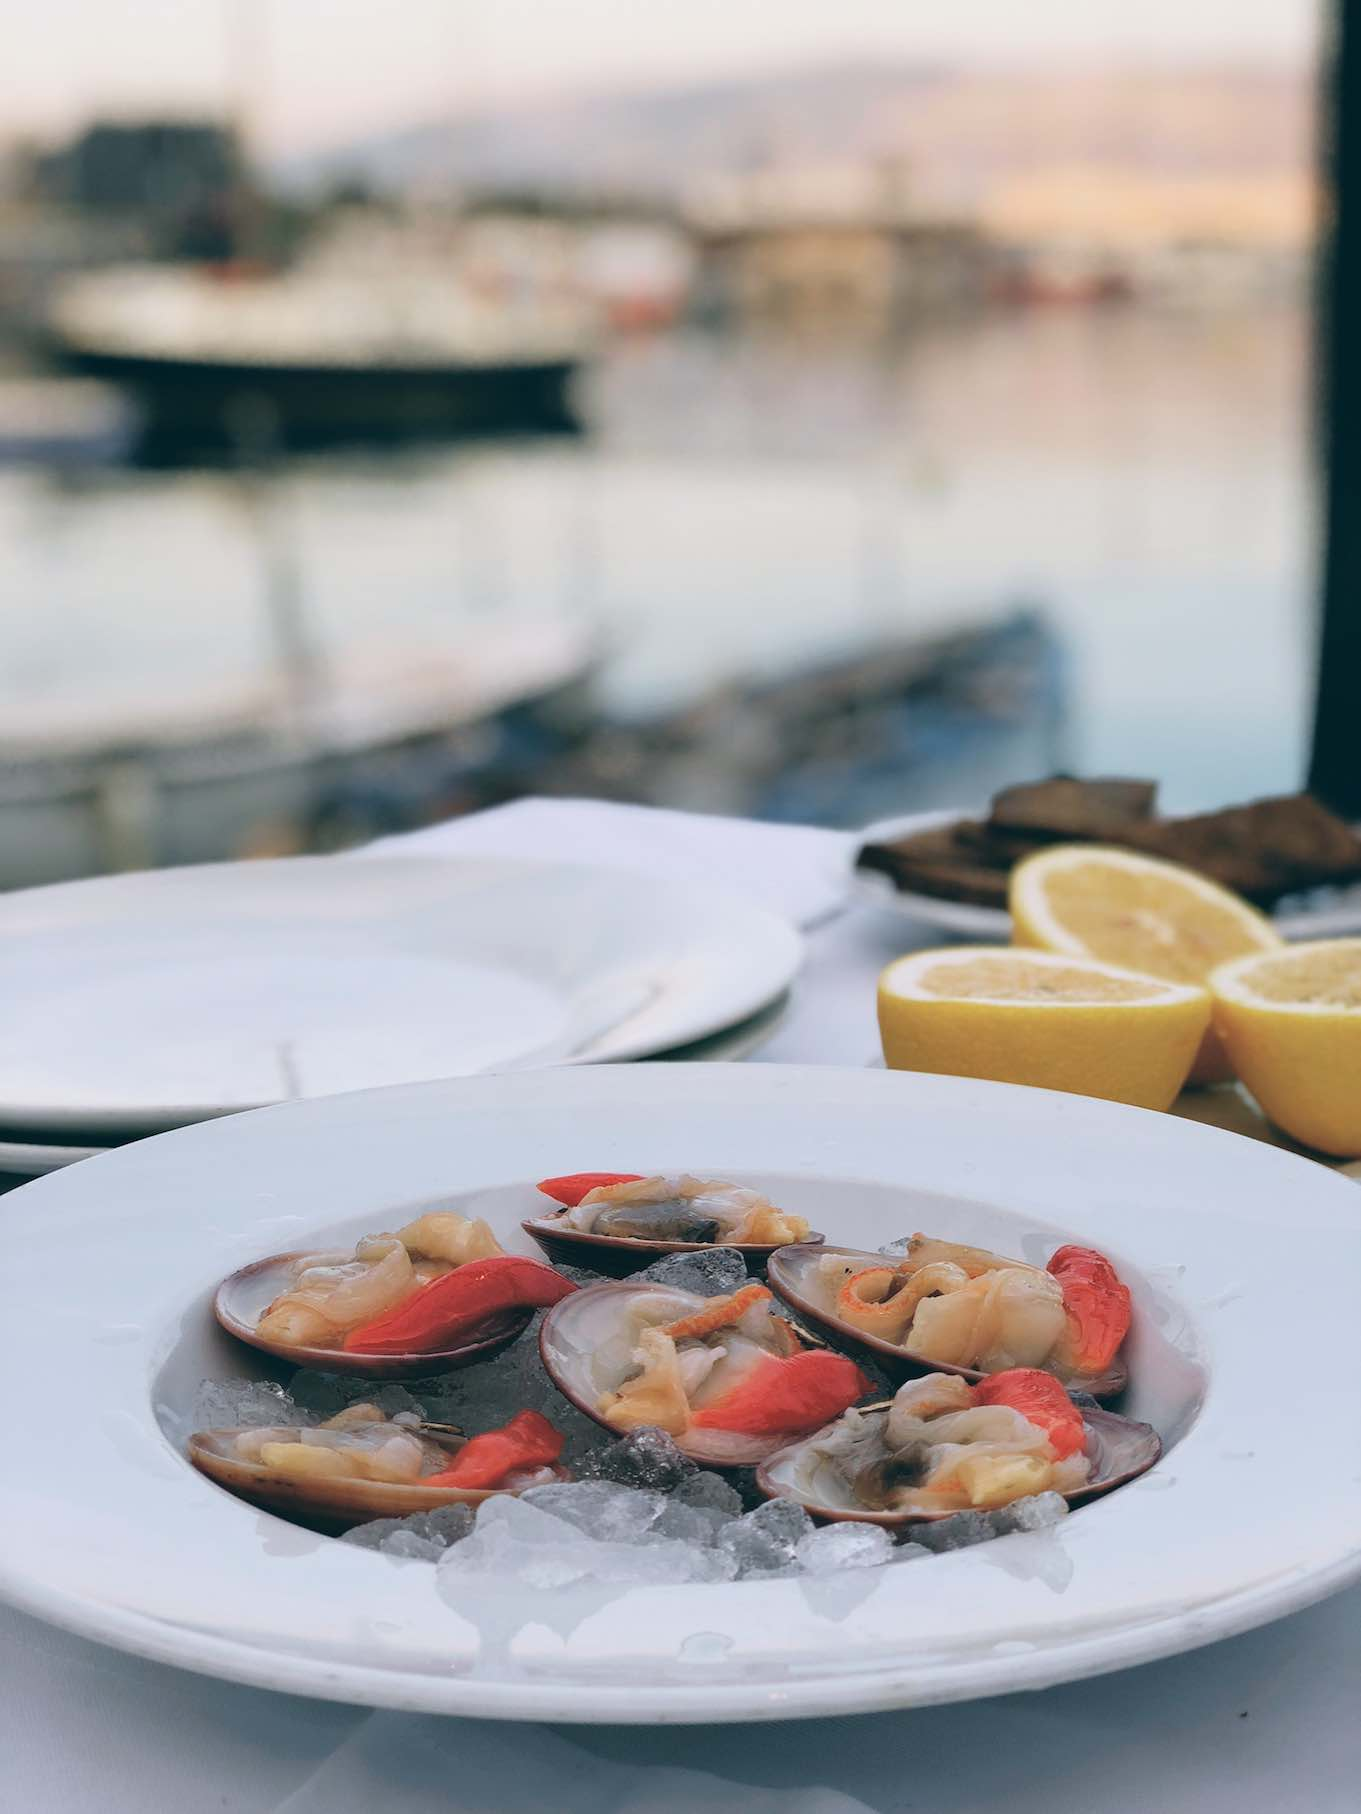 Gialisteres oysters sourced right from the sea